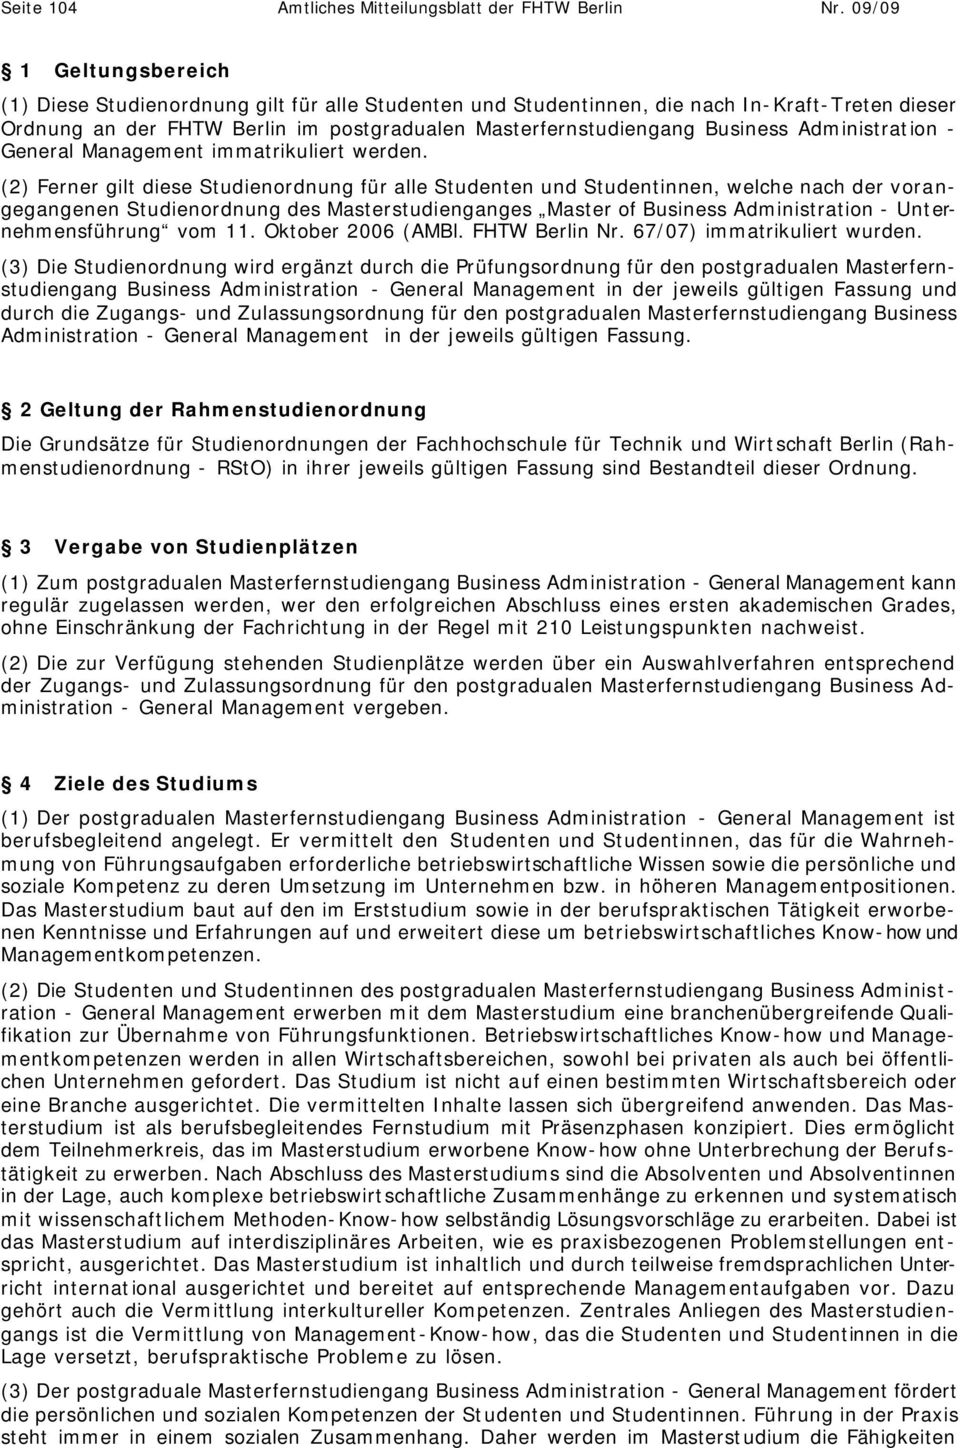 Administration - General Management immatrikuliert werden.